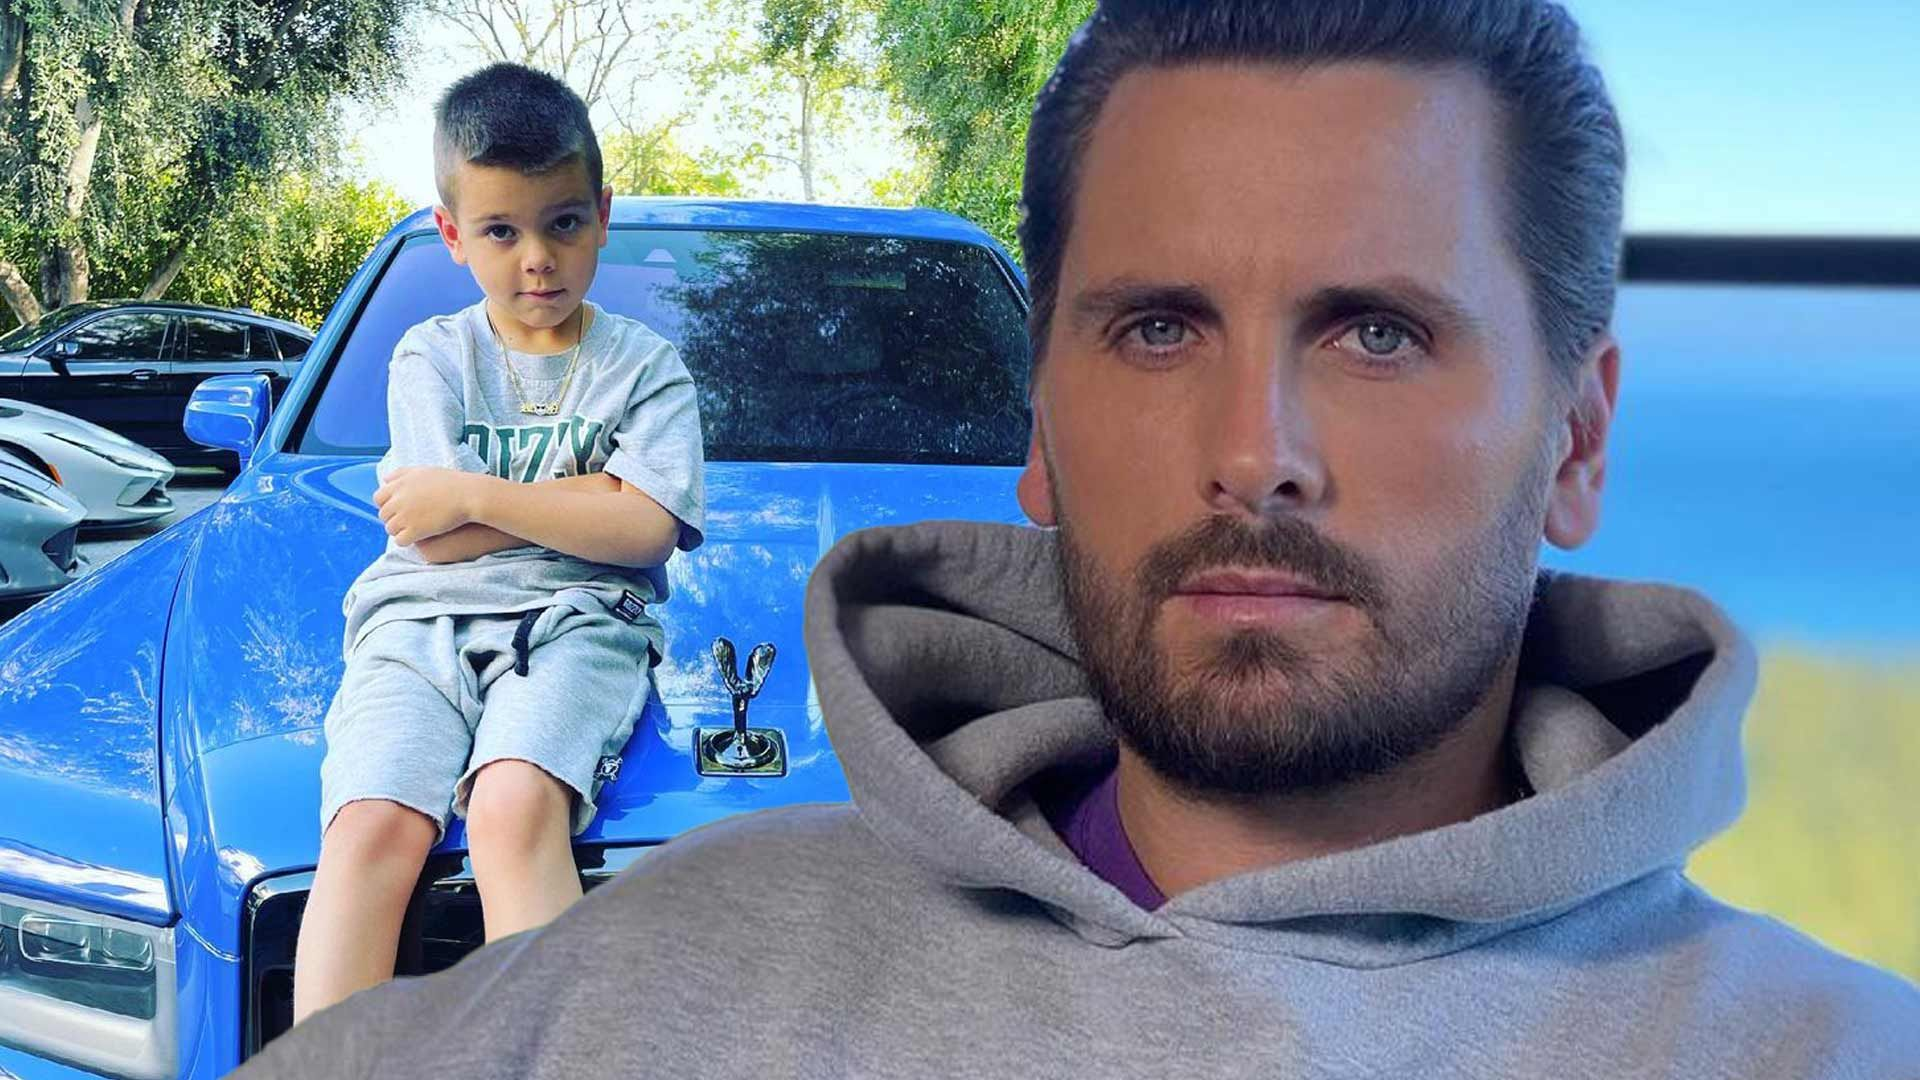 Scott Disick and his son, Reign.